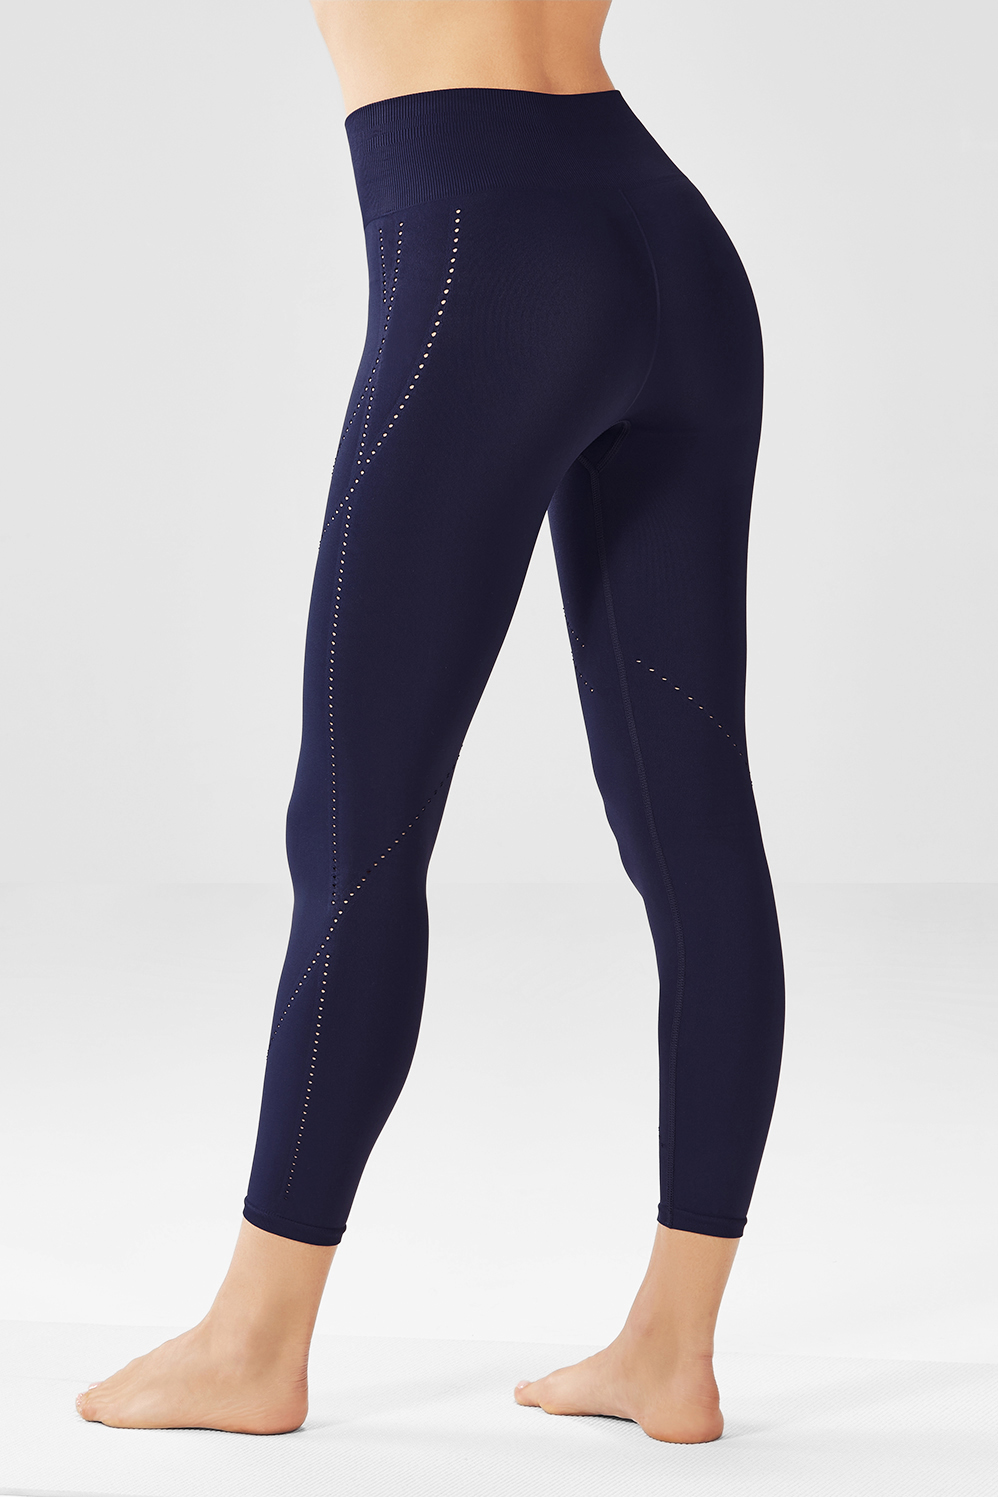 b3f5cf8af5ae0 Seamless High-Waisted Statement Capri - Fabletics